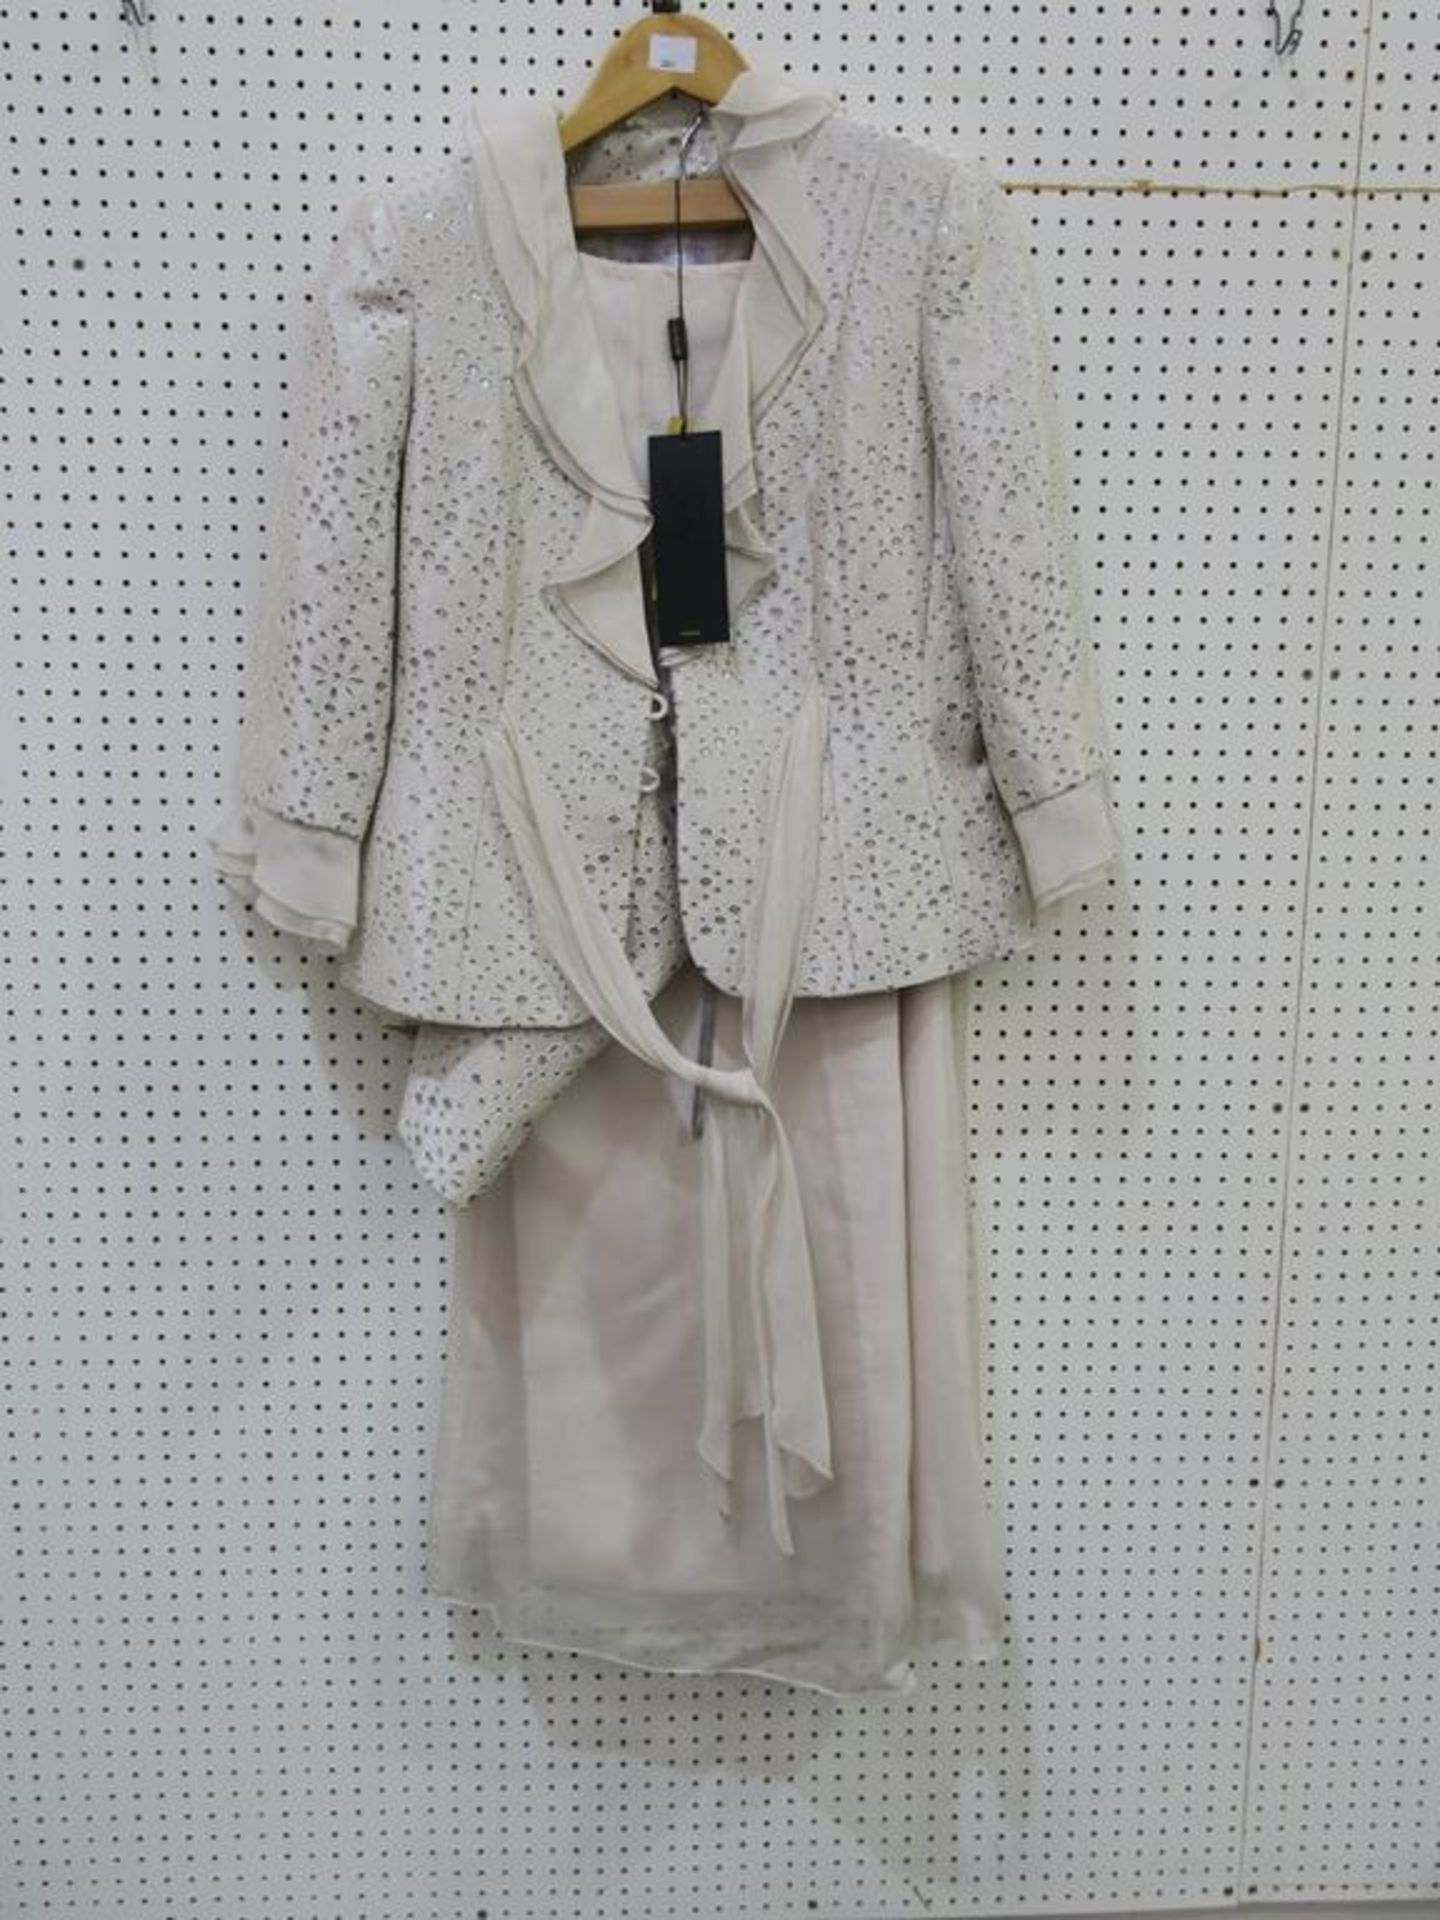 Lot 8041 - * Two Ladies Garments. An Ispirito (size 12, RRP £579) and a Luis Civit (size 12, RRP £664).